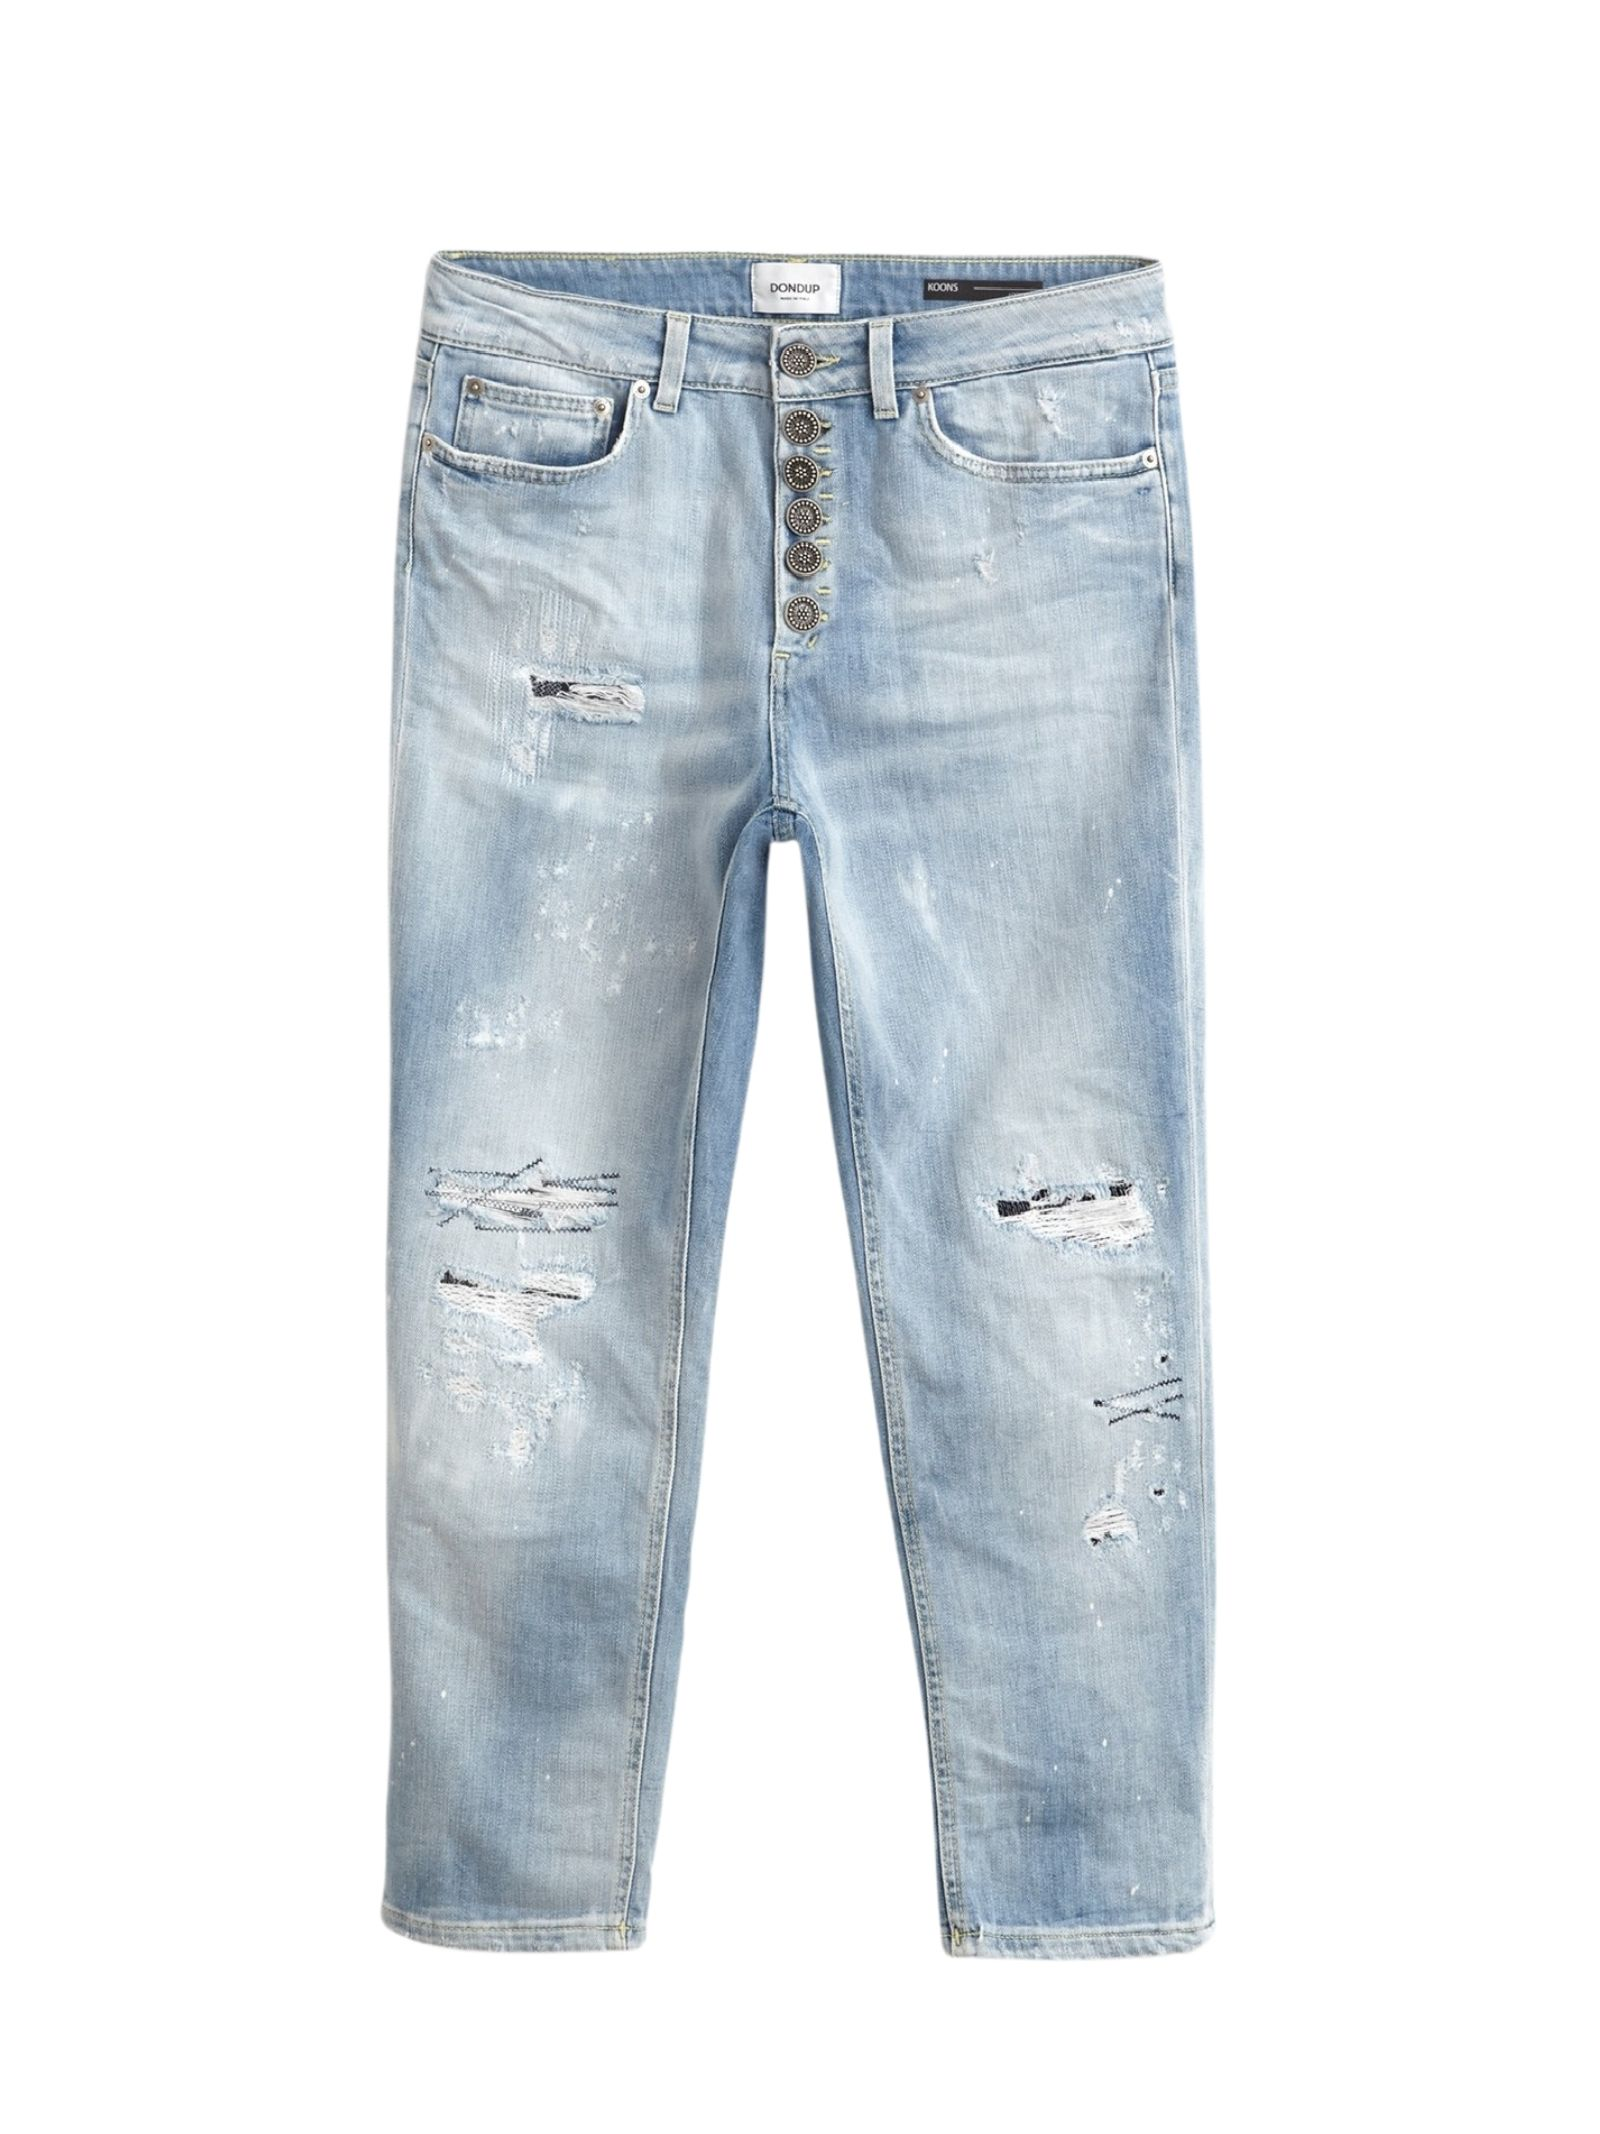 Jeans chiaro ripped DONDUP | Jeans | DP268B DS0107DAY5